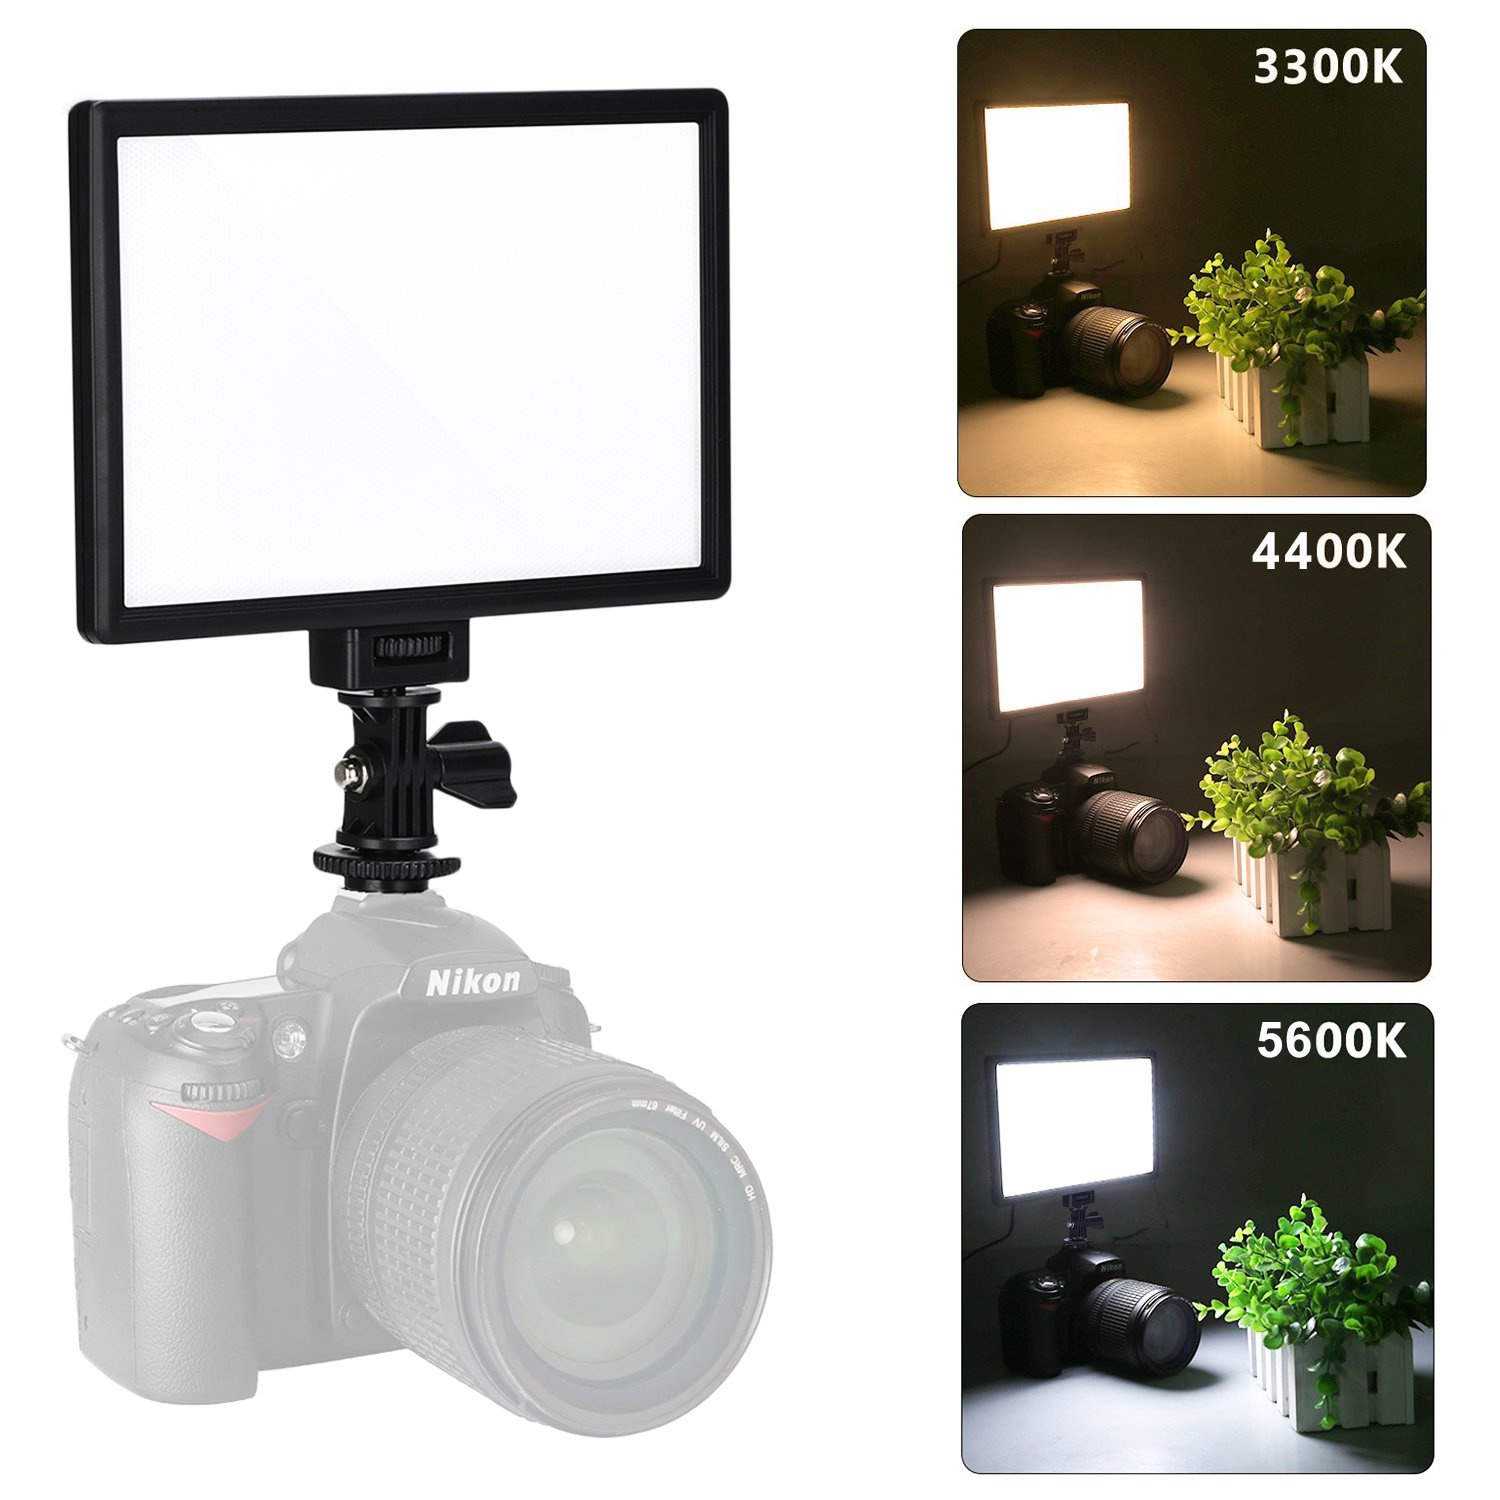 VILTROX L116T RA CRI95 Super Slim LED Light Panel ,3300K-5600K LED Video Light , LCD display screen, with hot shoe ball mount,Color temperature and Brightness can be adjusted by VILTROX